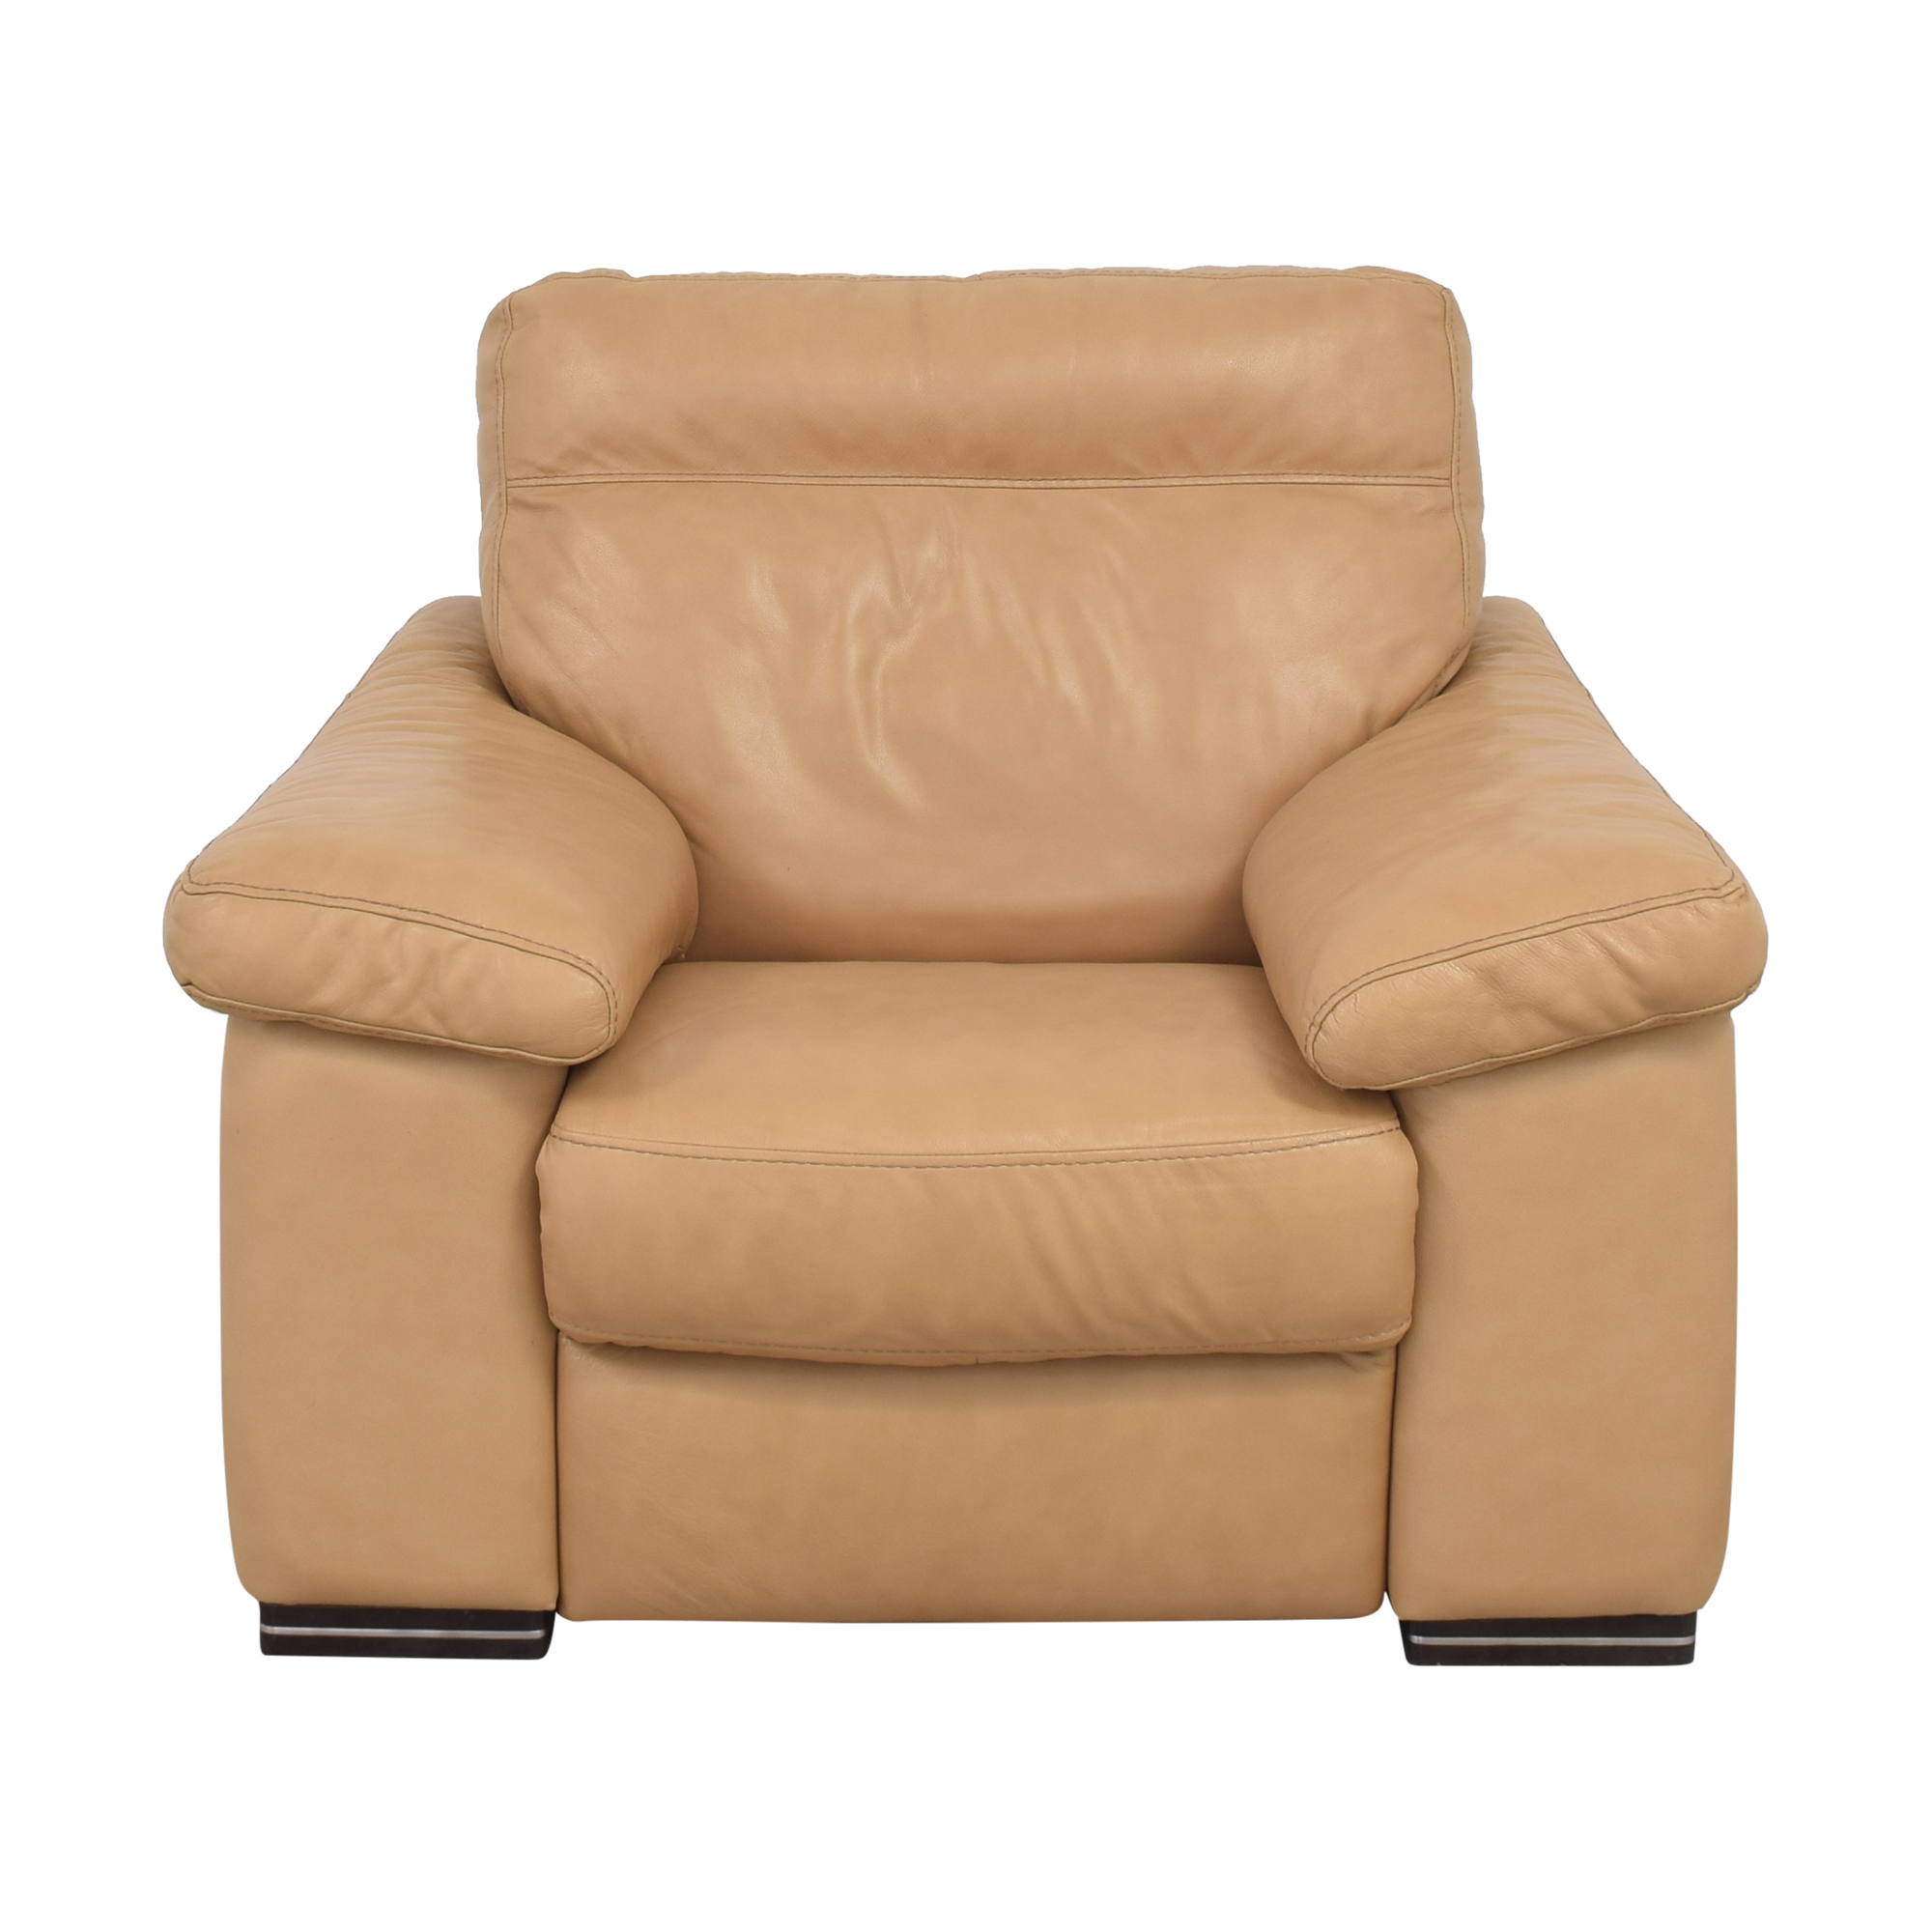 Natuzzi Editions Onore Recliner / Recliners